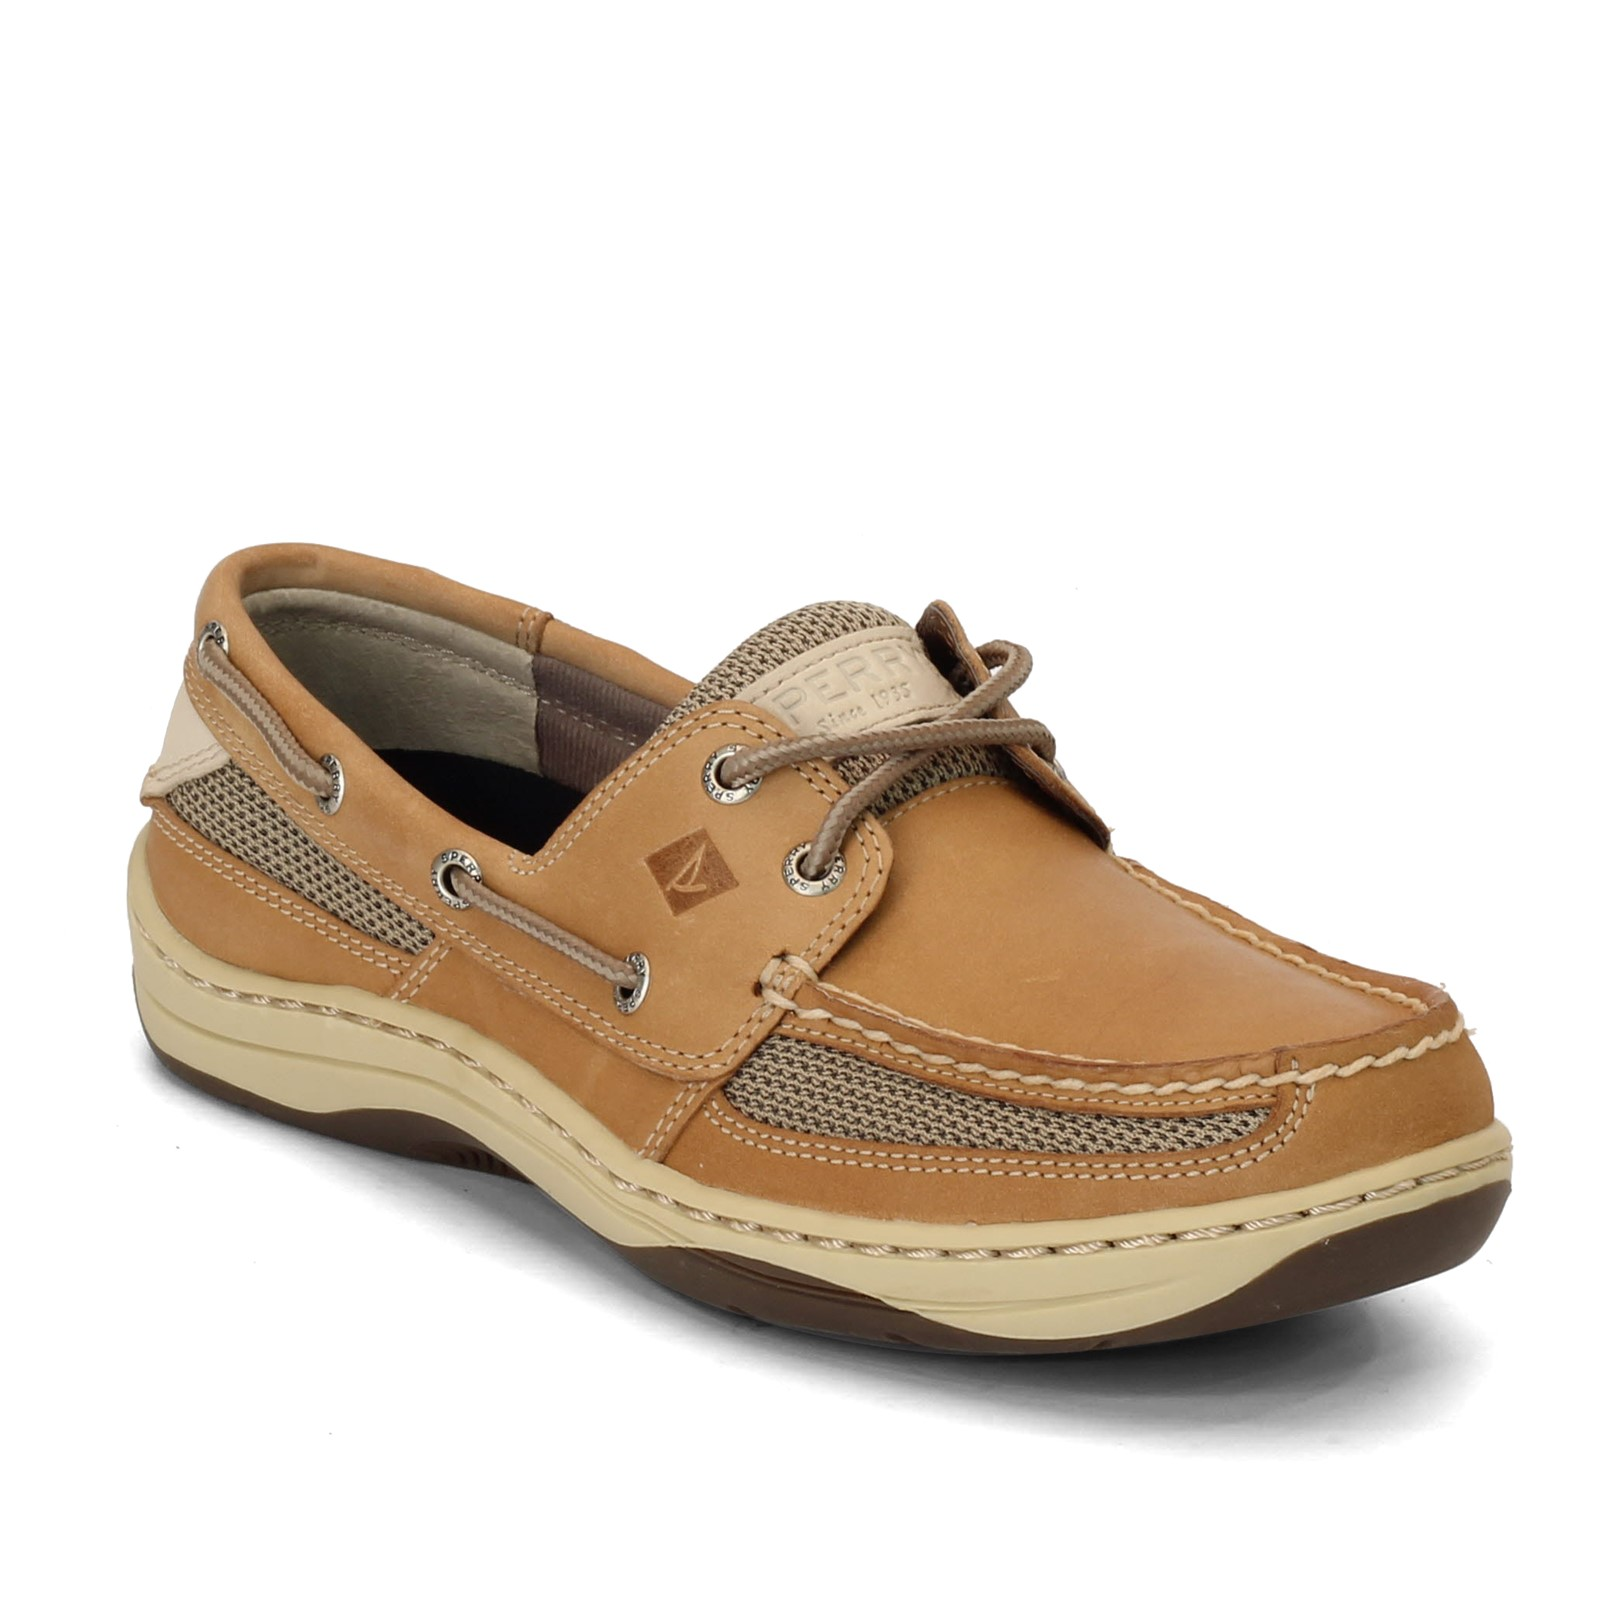 Men's Sperry, Tarpon 2-Eye Boat Shoes